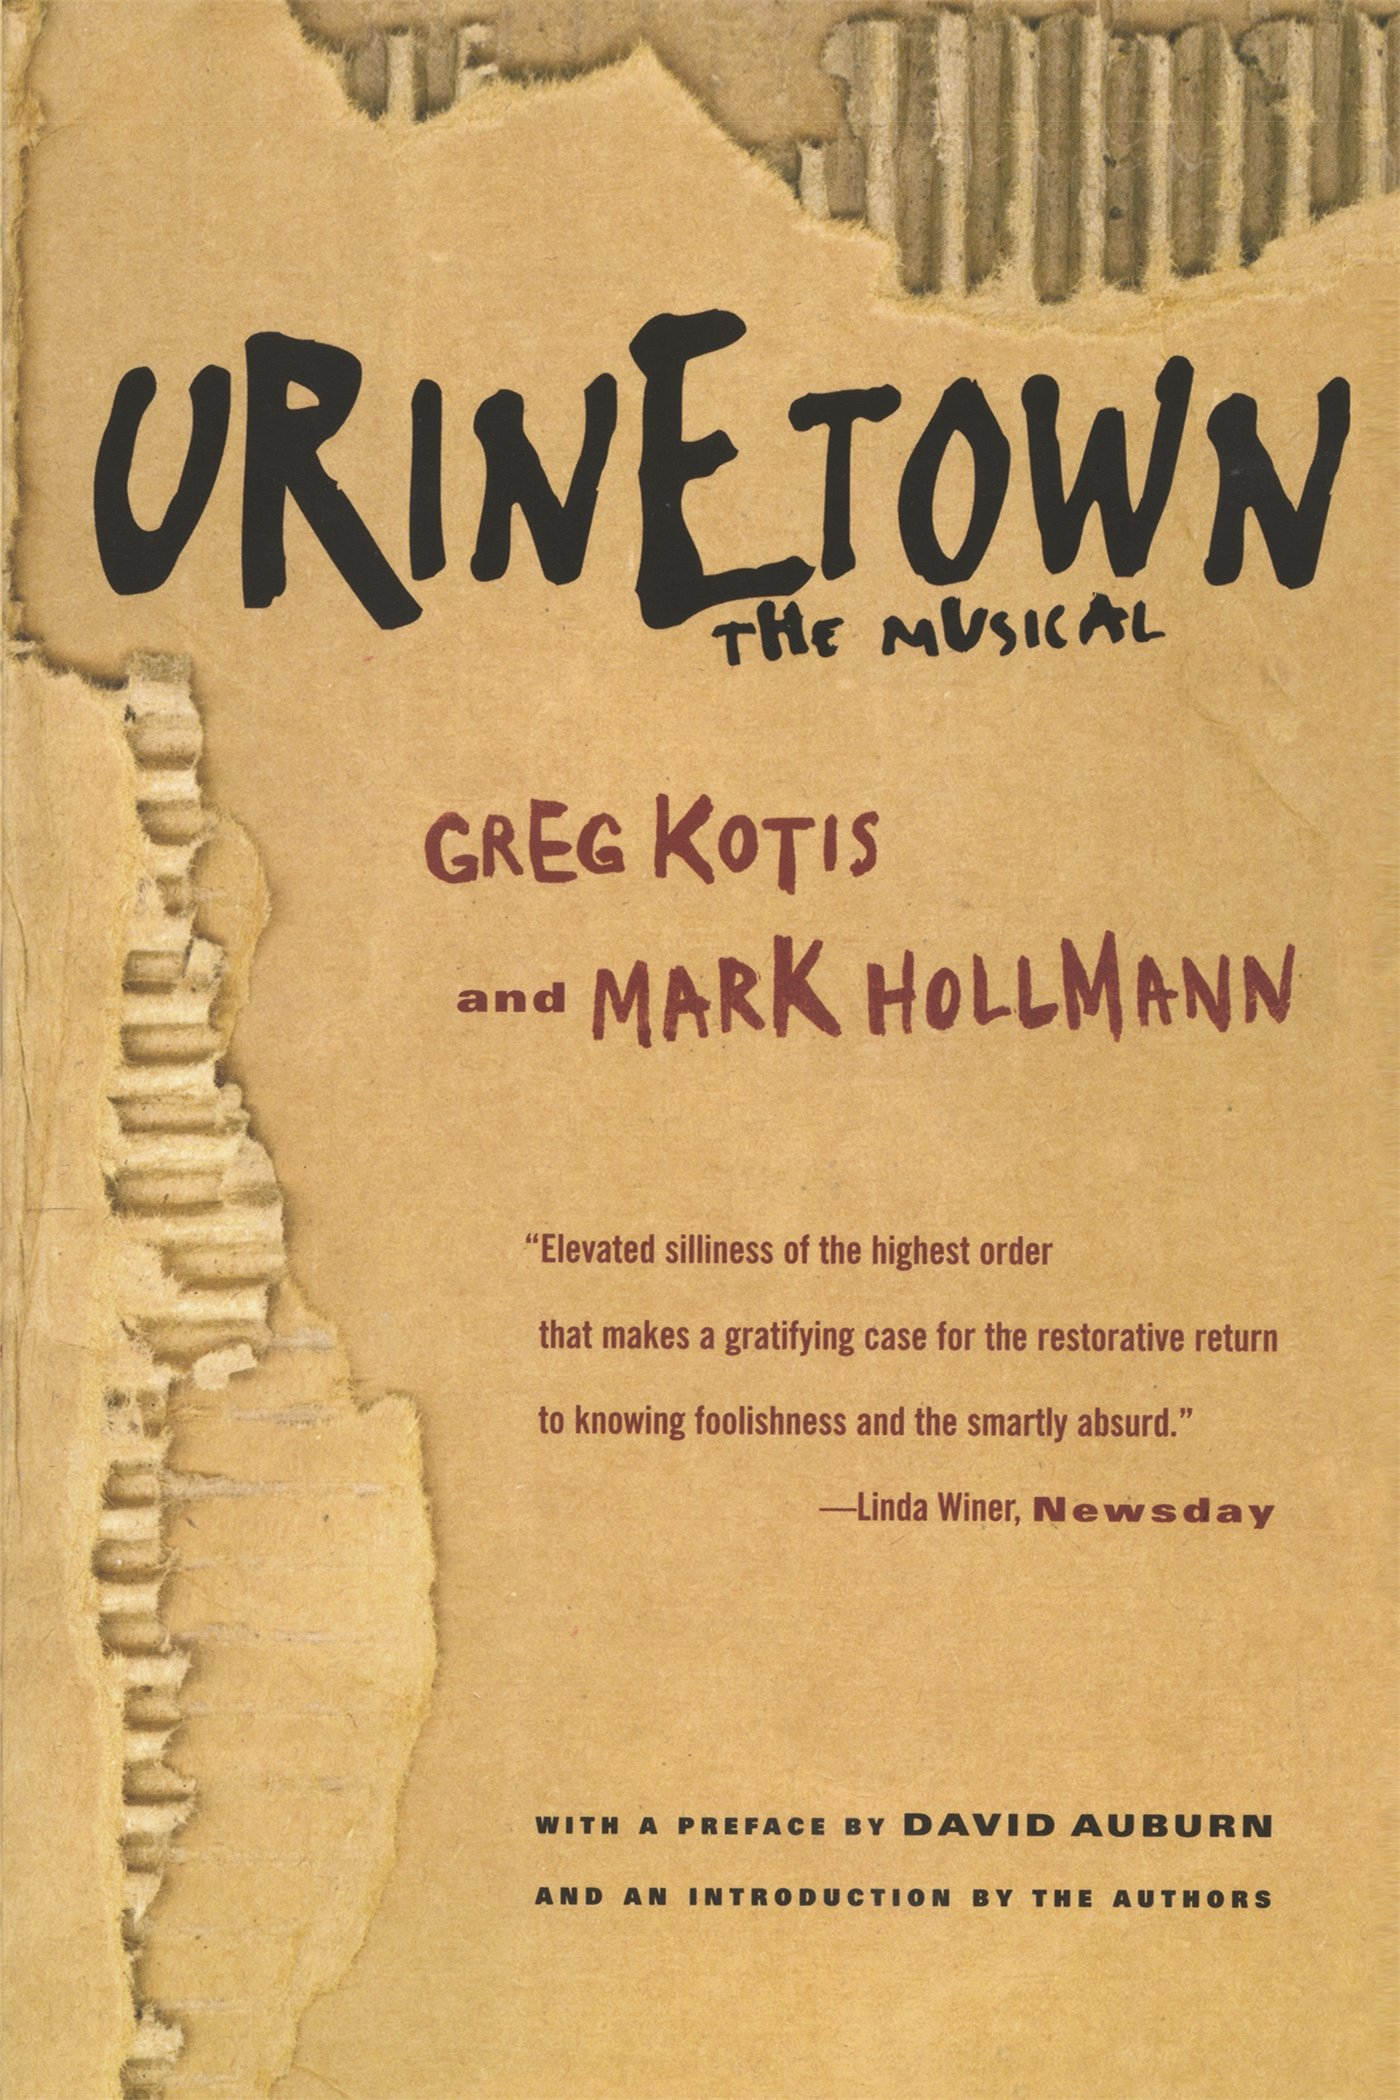 Urinetown the musical mark hollmann greg kotis 9780571211821 urinetown the musical mark hollmann greg kotis 9780571211821 amazon books fandeluxe Choice Image